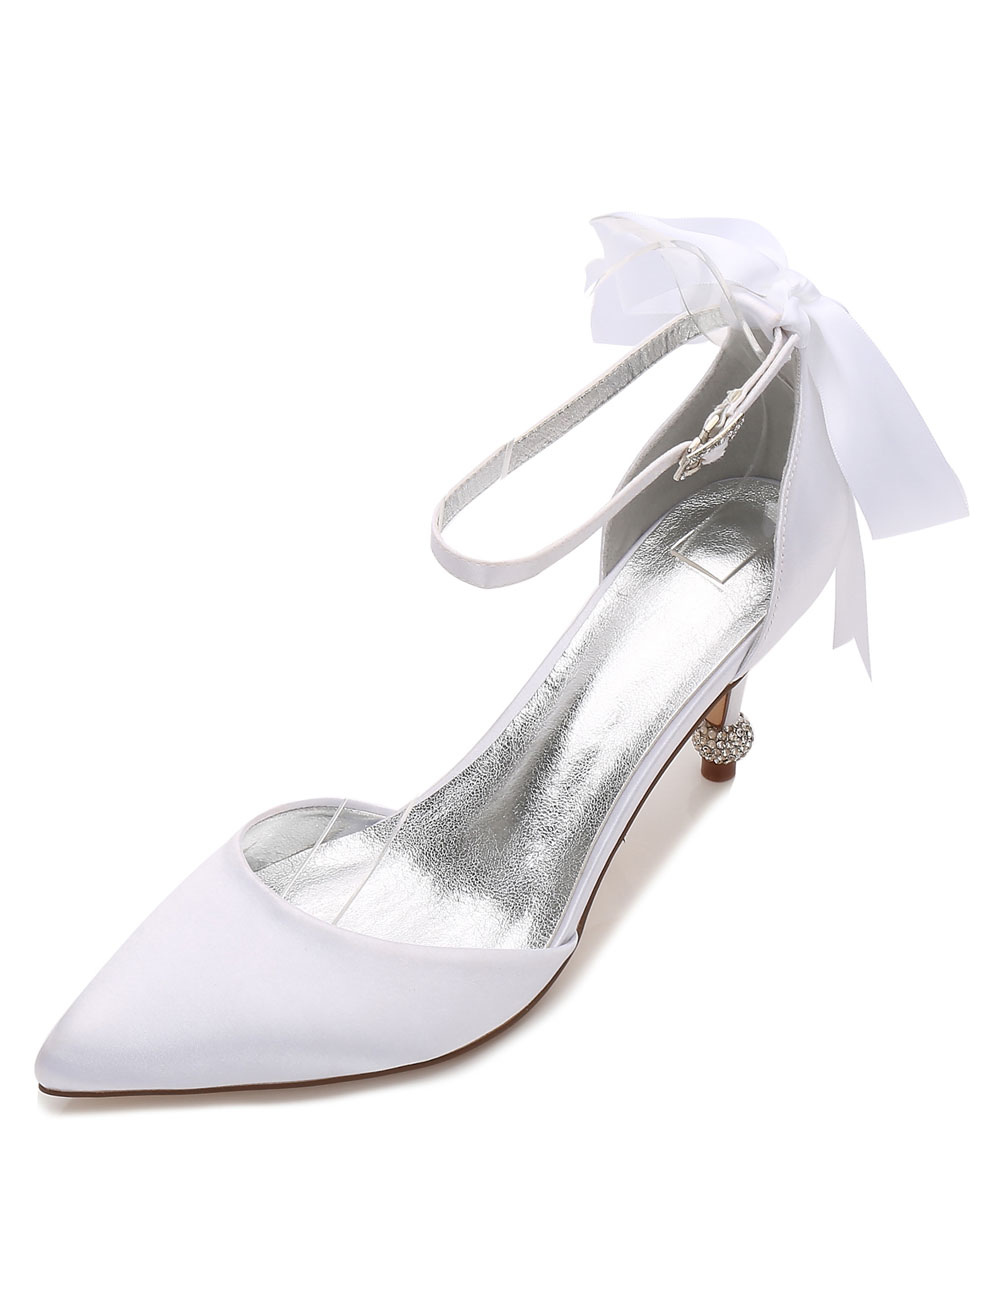 White Wedding Shoes Satin Pointed Toe Bow Kitten Heel Bridal Shoes For Women